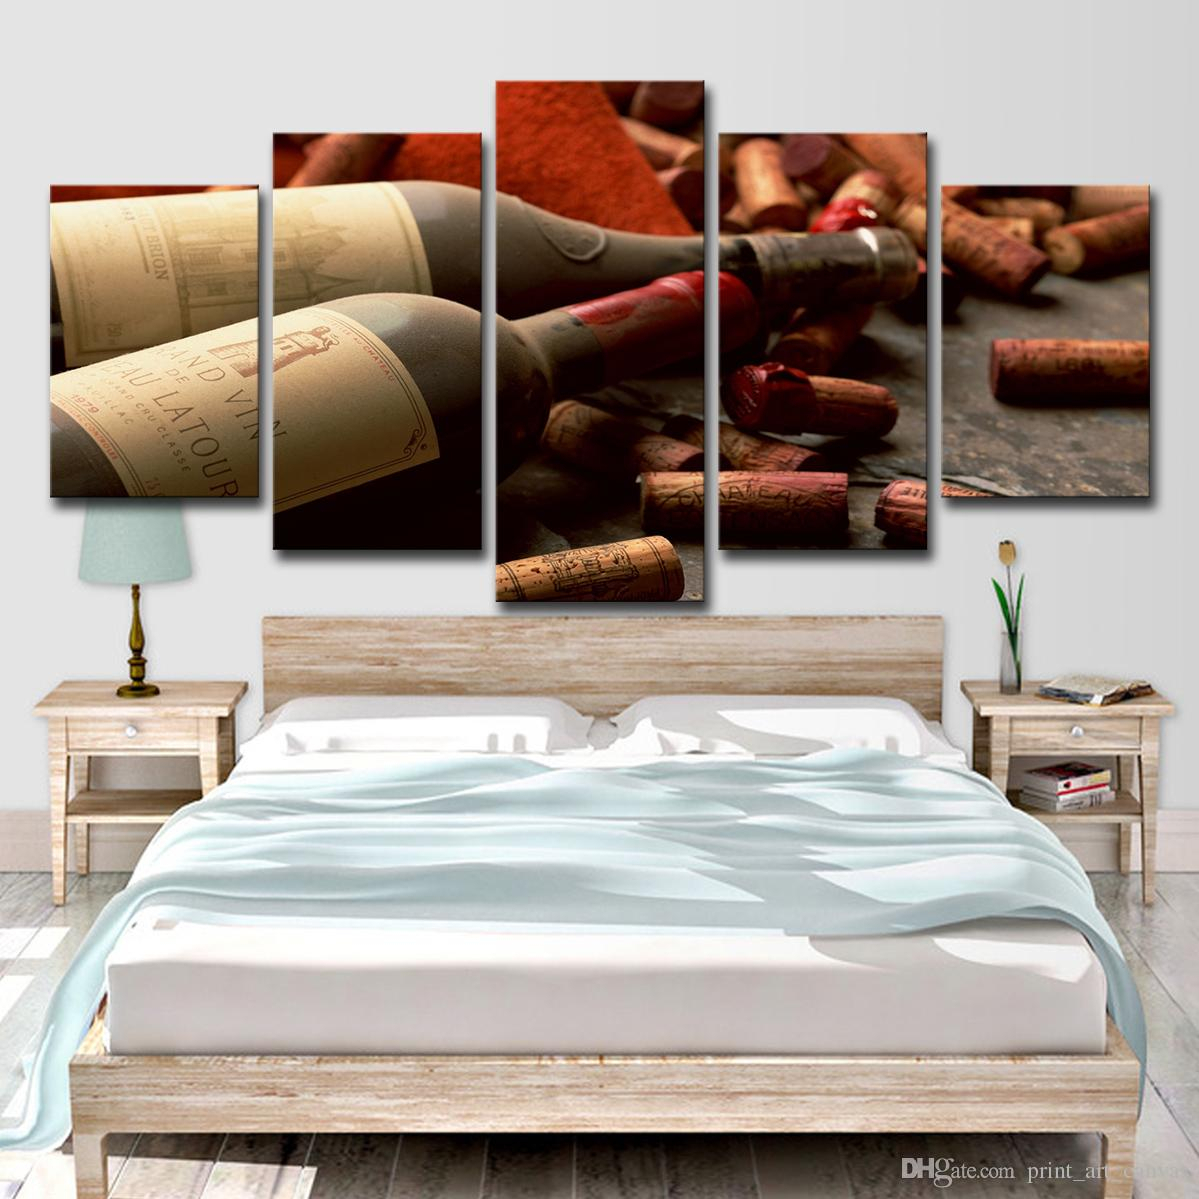 Home Decor Hd Prints Pictures Kitchen Canvas Wall Art Poster 5 Pieces Grape Red Wine Cork Bottle Stopper Paintings In Latour Wall Decor (View 23 of 30)